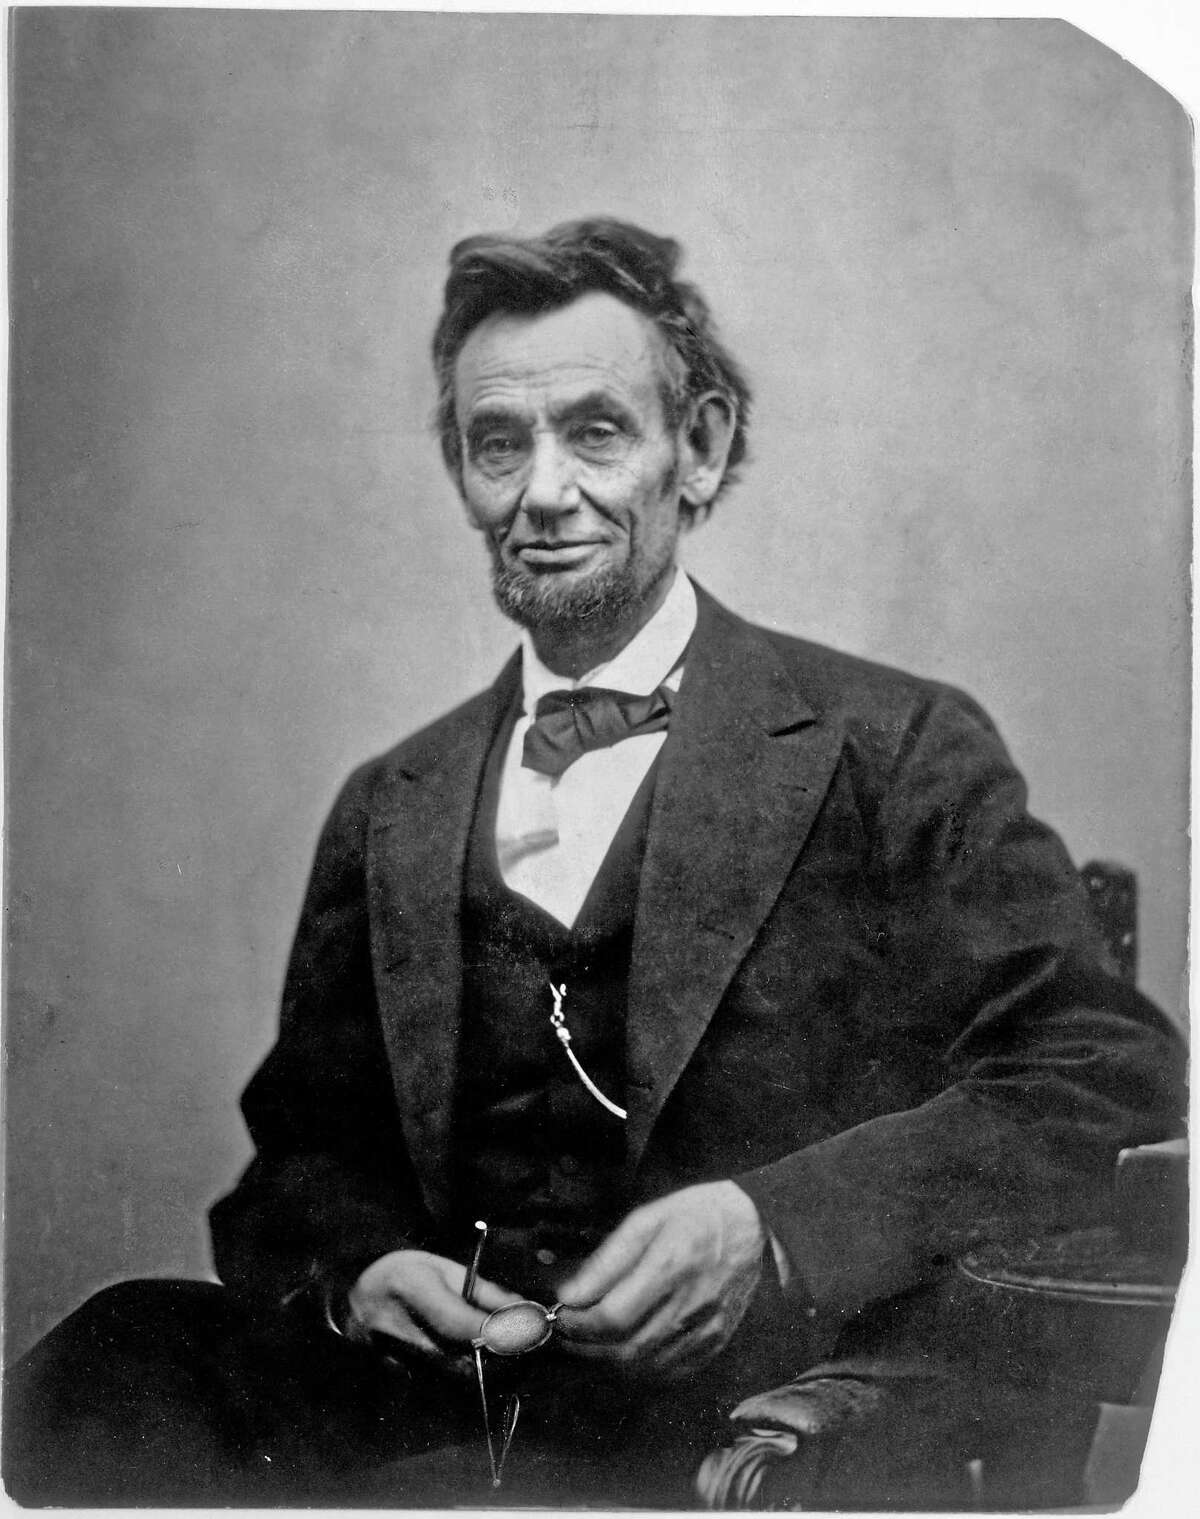 This photograph of Lincoln by Alexander Gardner was taken Feb. 5, 1865. The president's haggard, careworn appearance shows the toll wrought by four years of war.